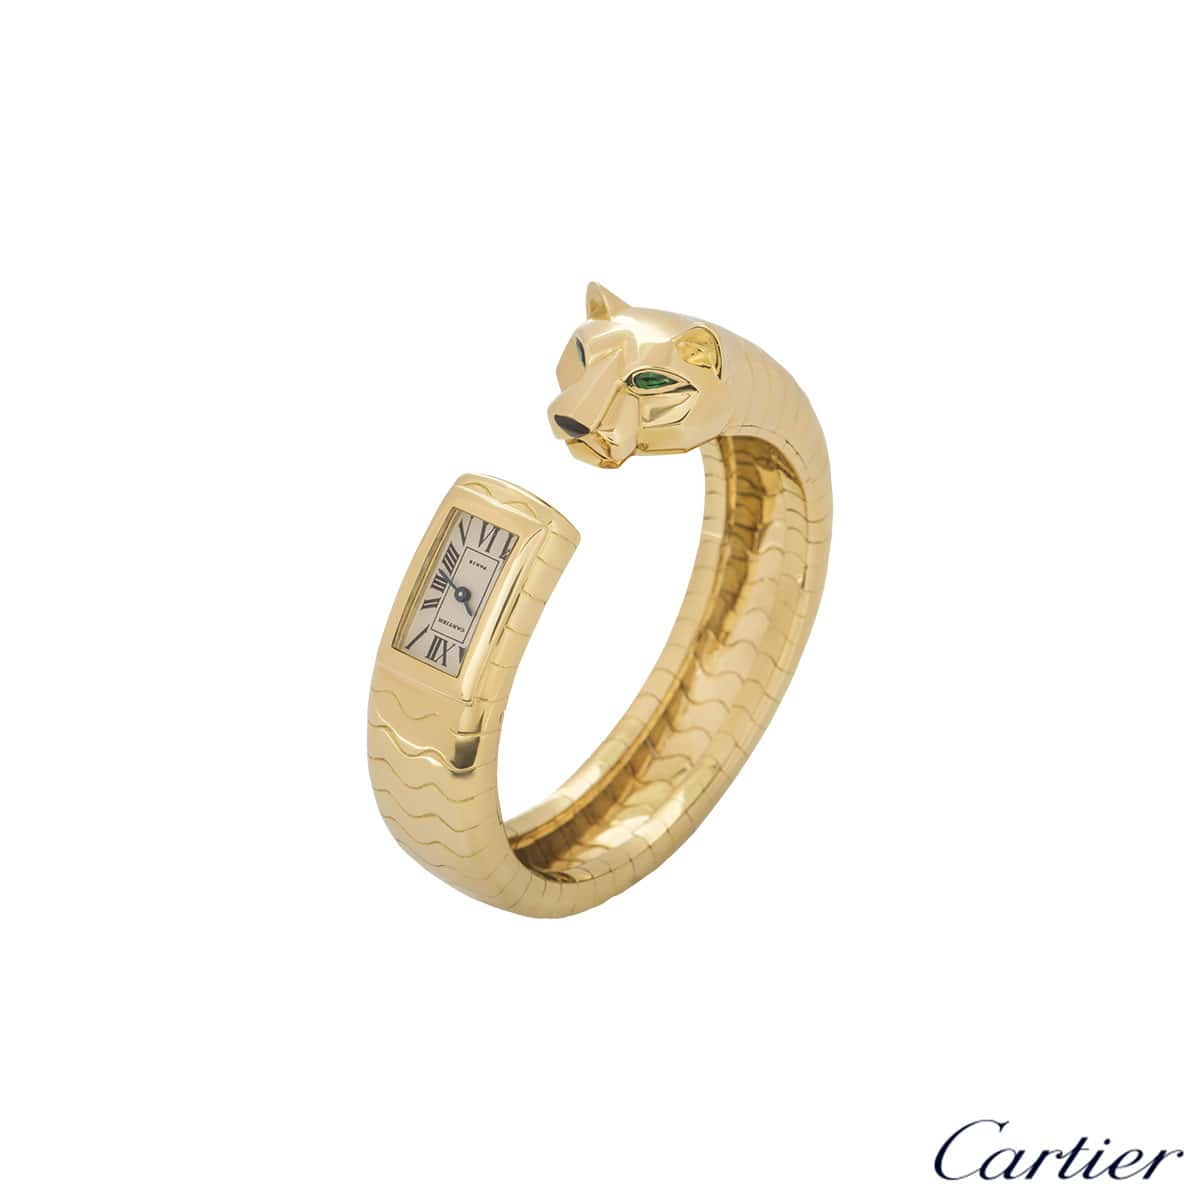 Cartier Yellow Gold Emerald And Onyx Panther Lakard Cuff Bangle Watch